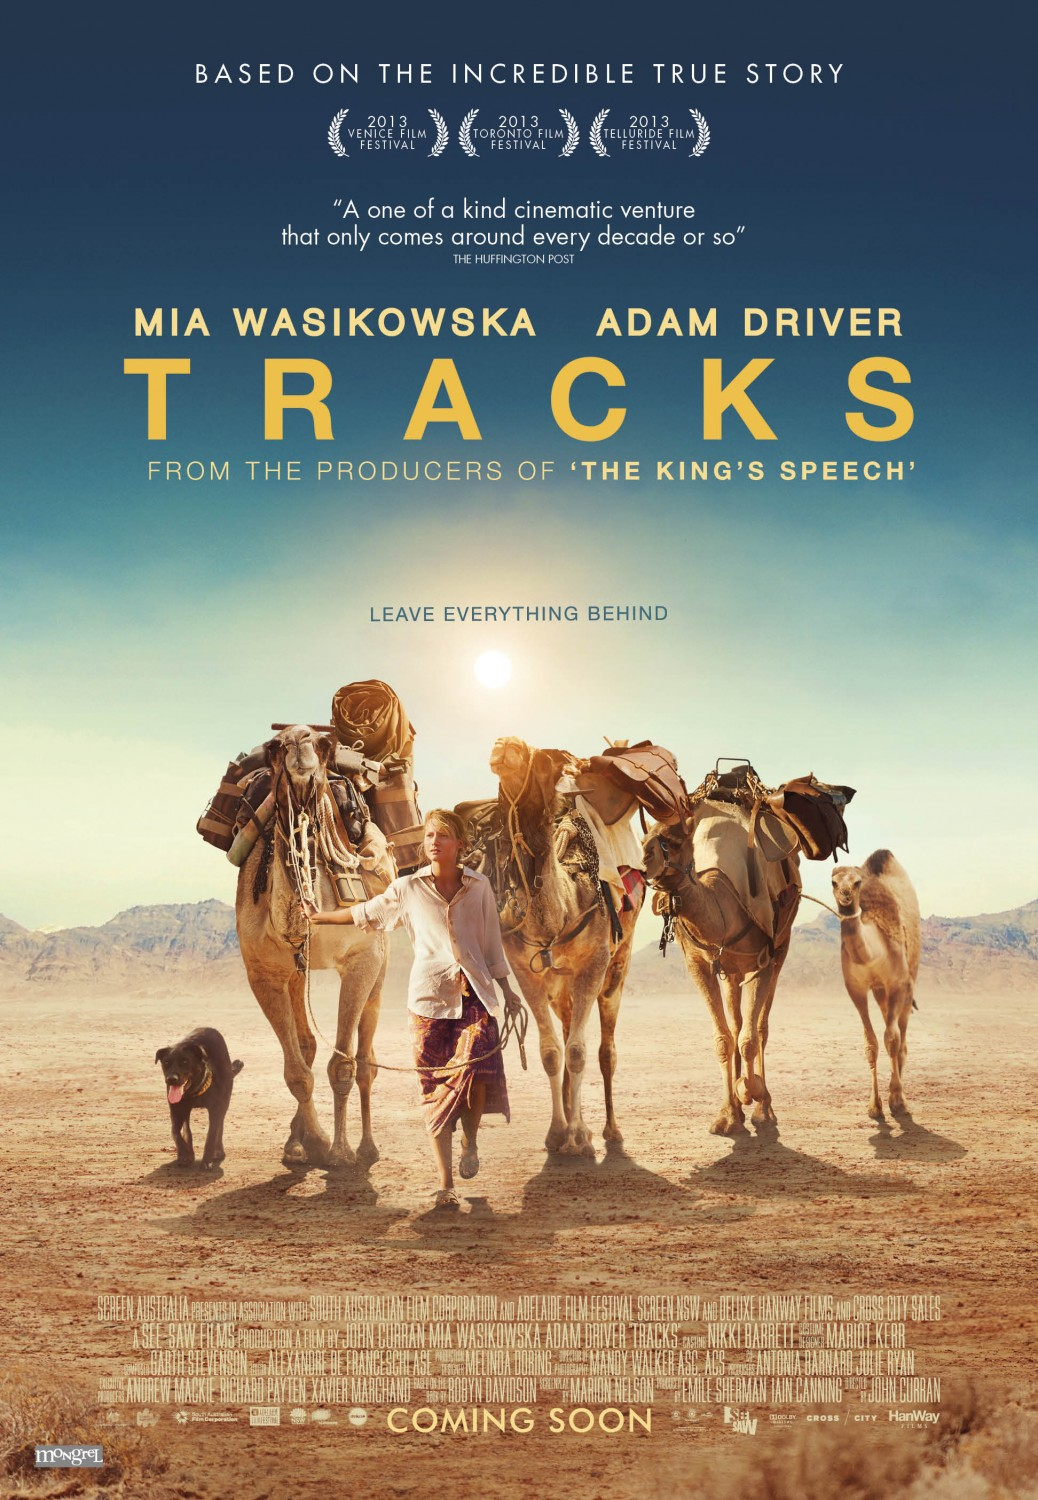 Travel Movie Monday: Tracks | The Cheerful Wanderer